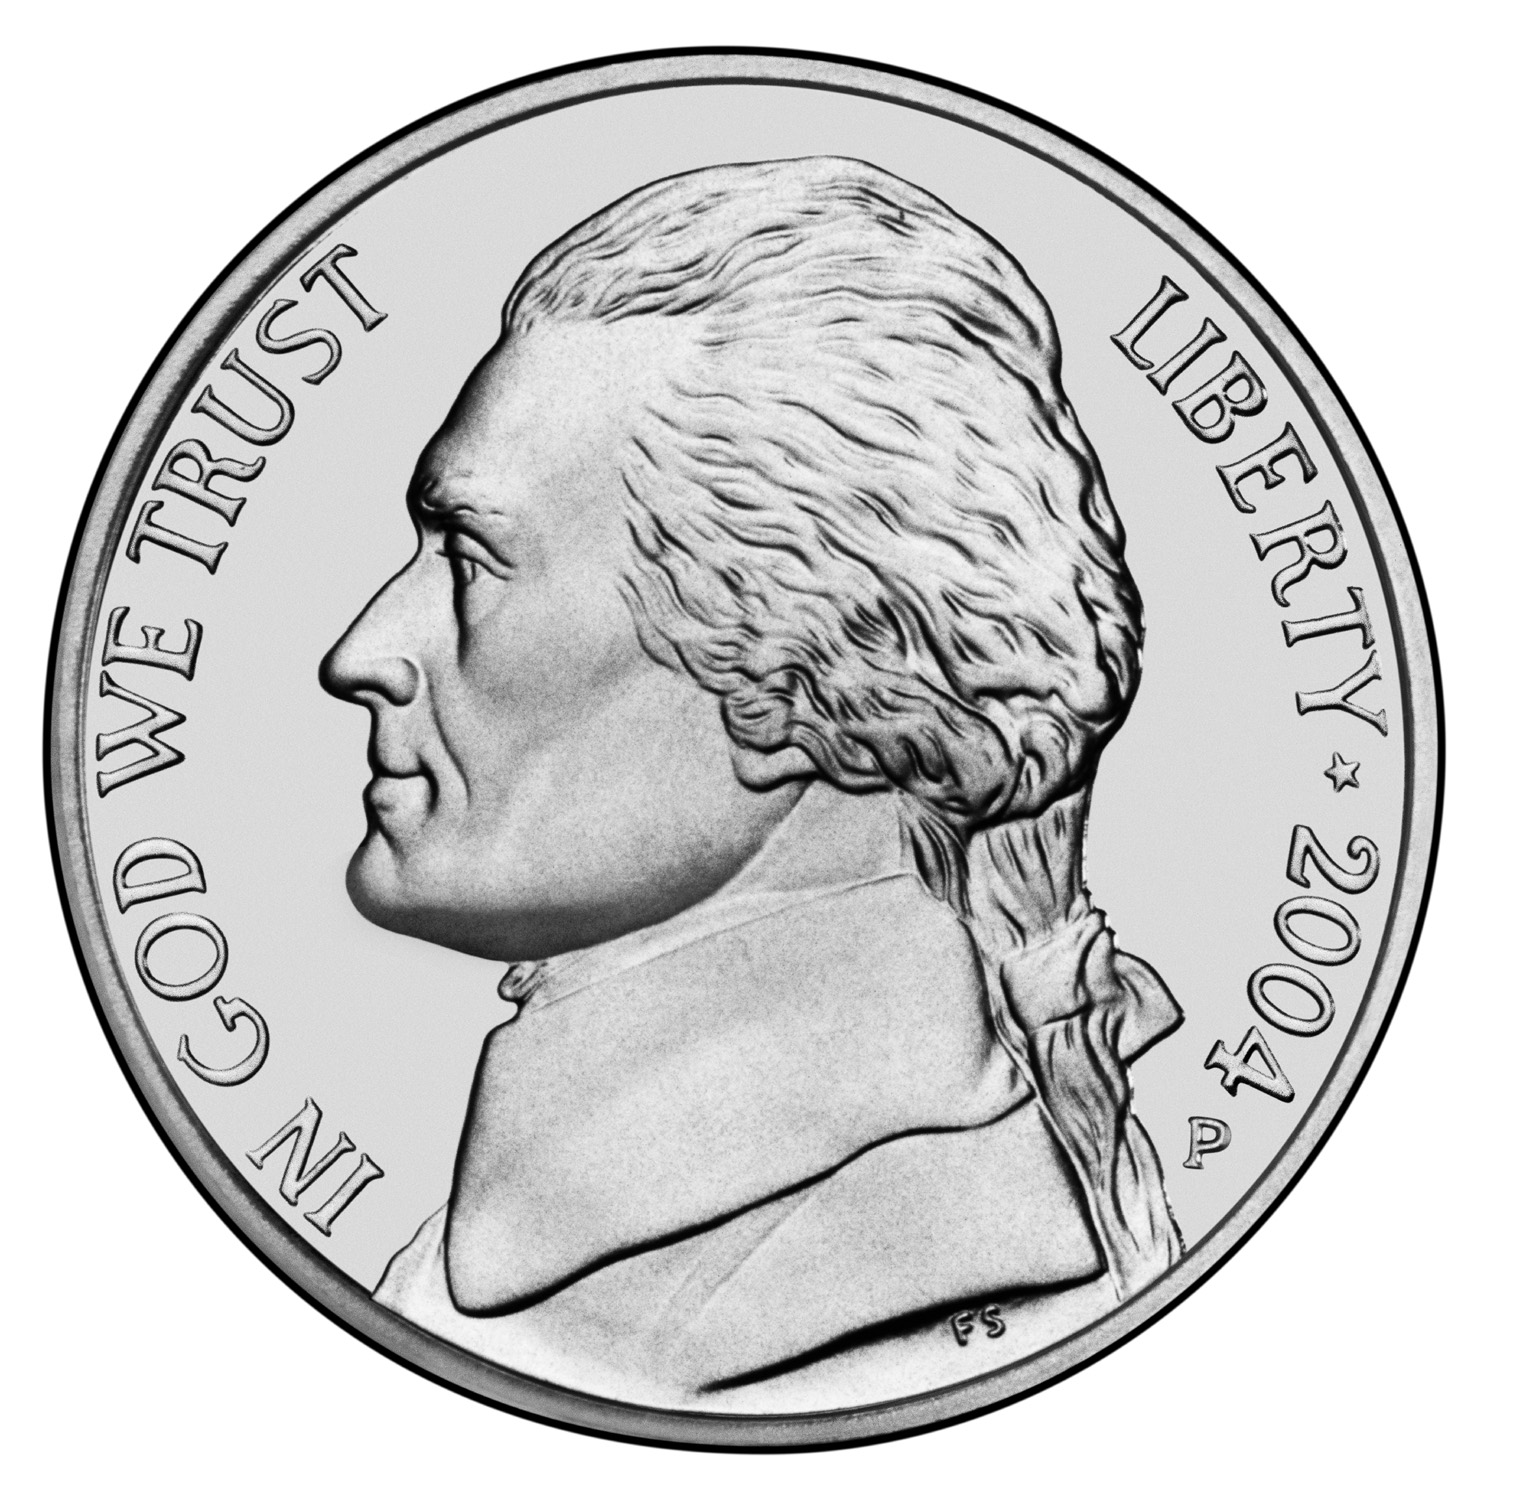 5 Cents Jefferson Nickel 1st Portrait